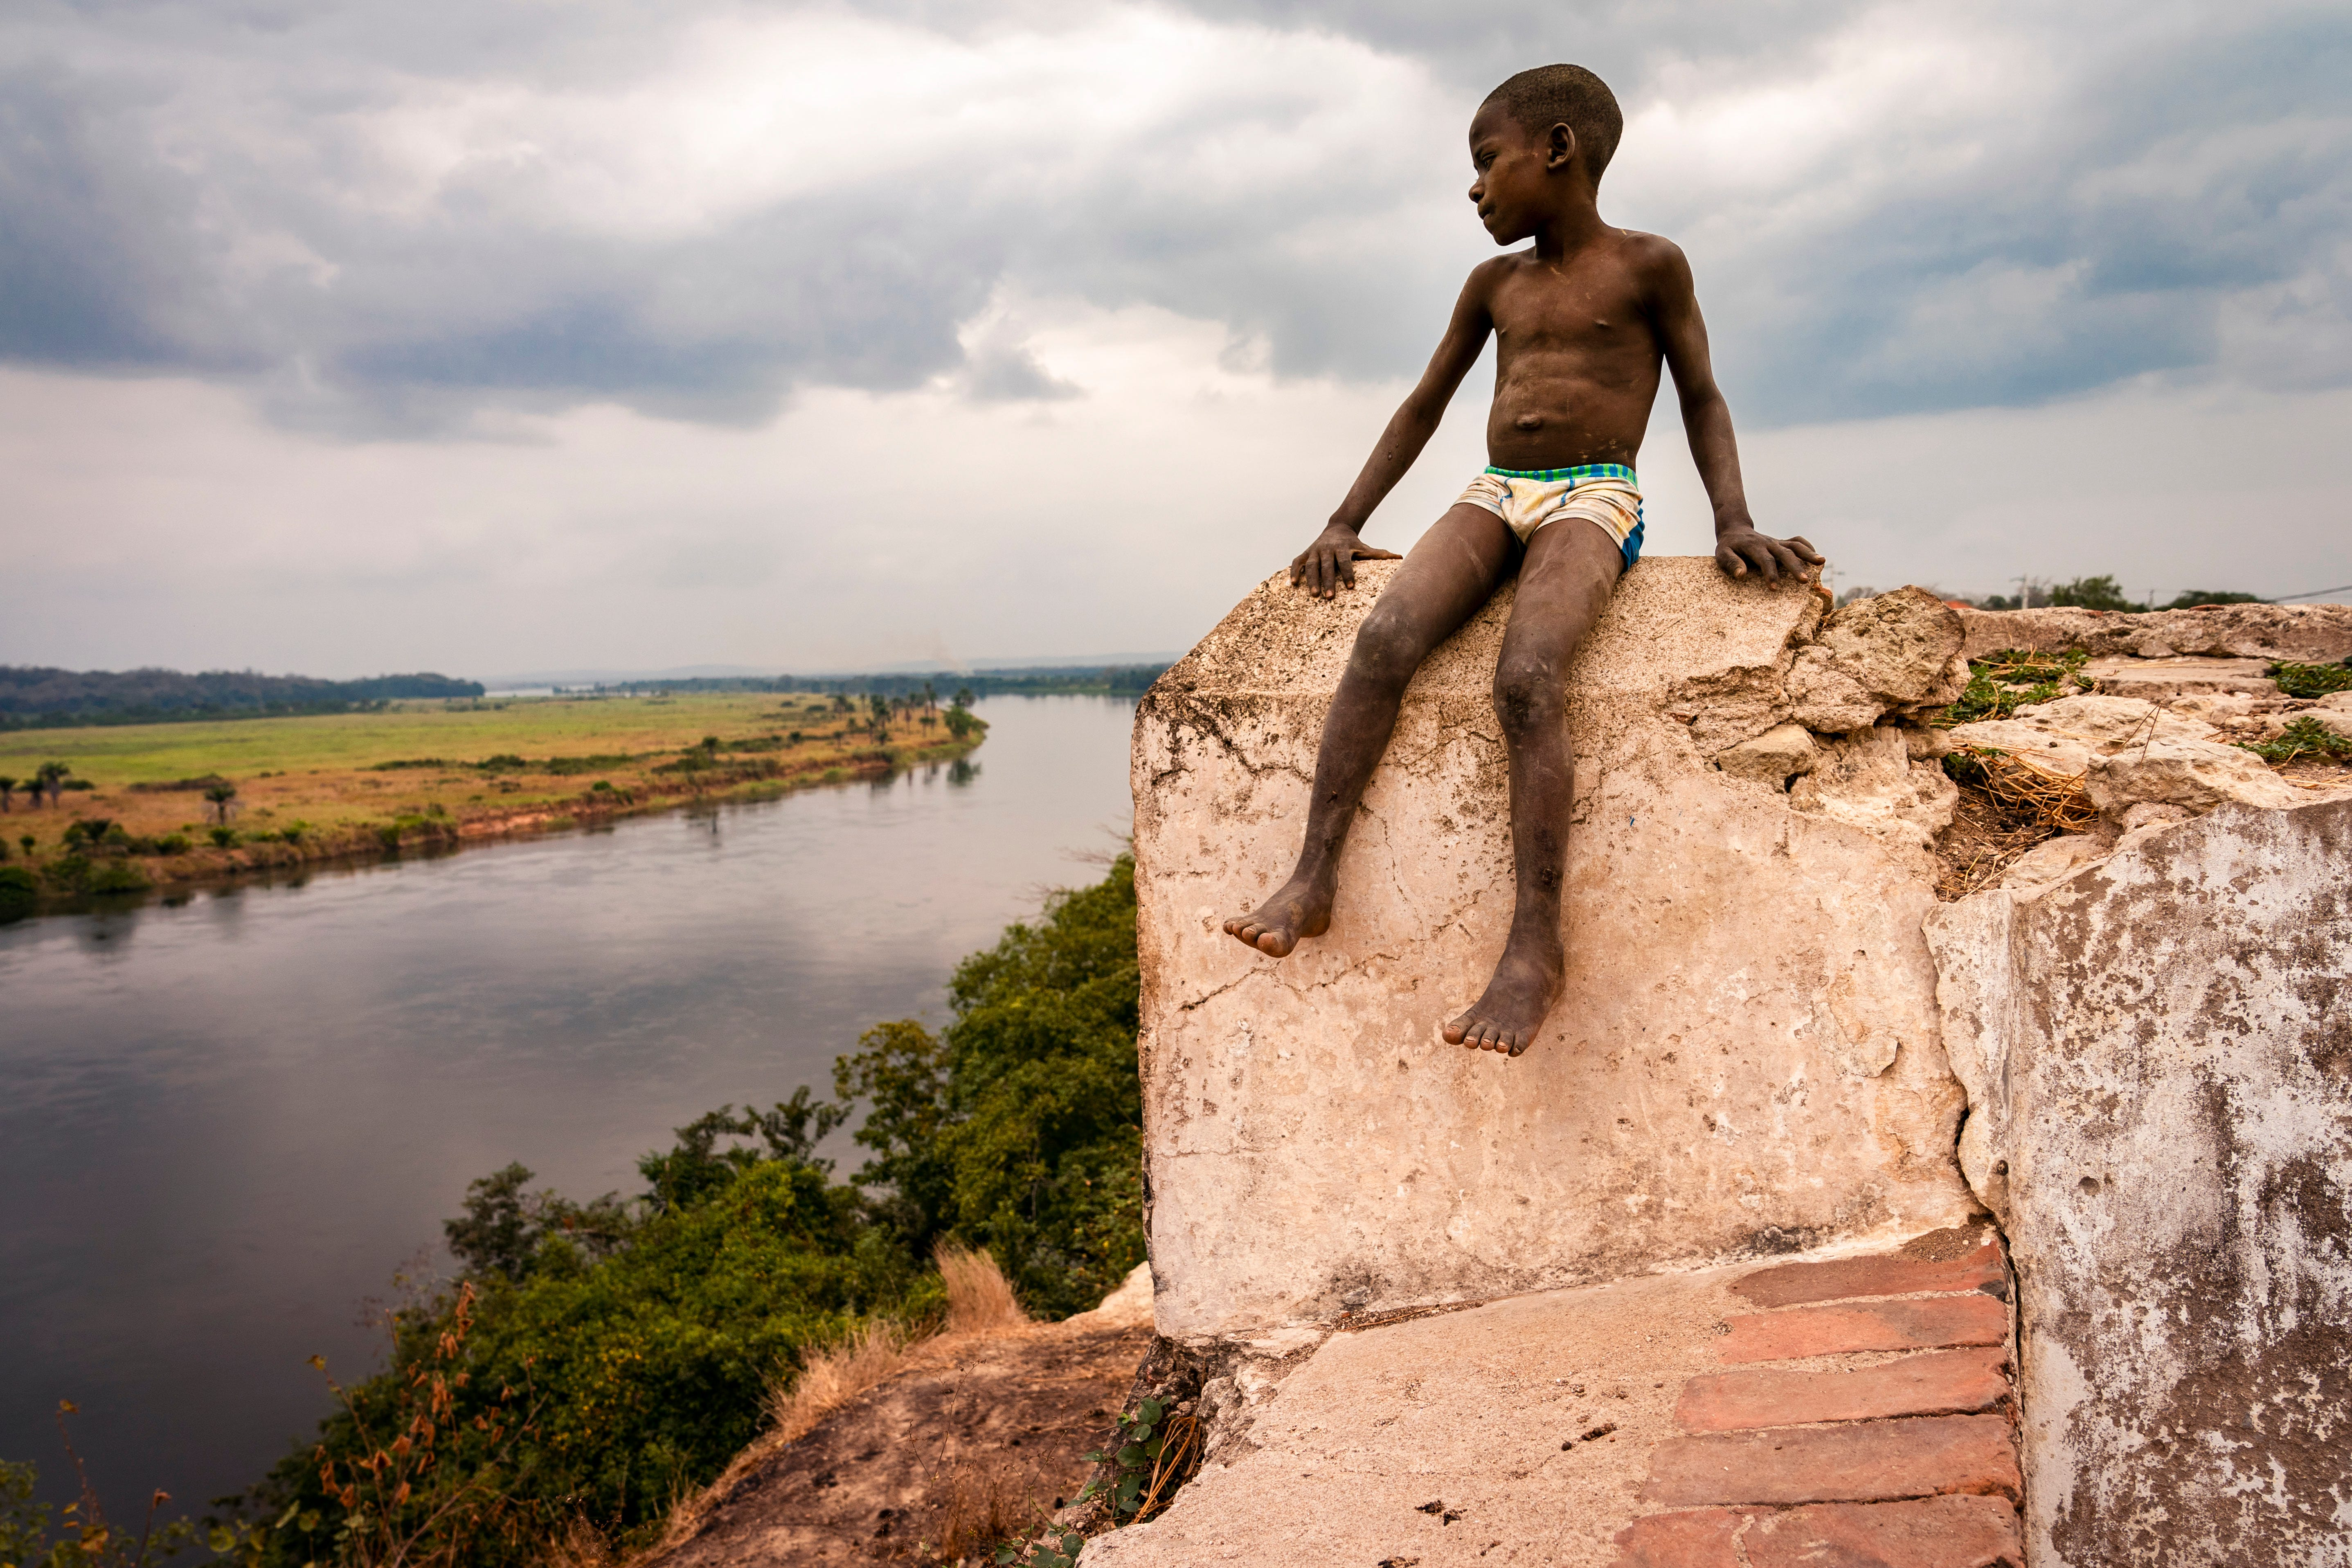 A boy looks out toward the Kwanza river from the Fortaleza de Massangano in Angola. The fort was a base of operations for the Portuguese. Captured Africans were branded and baptized before being taken to the coast and loaded onto slave ships.